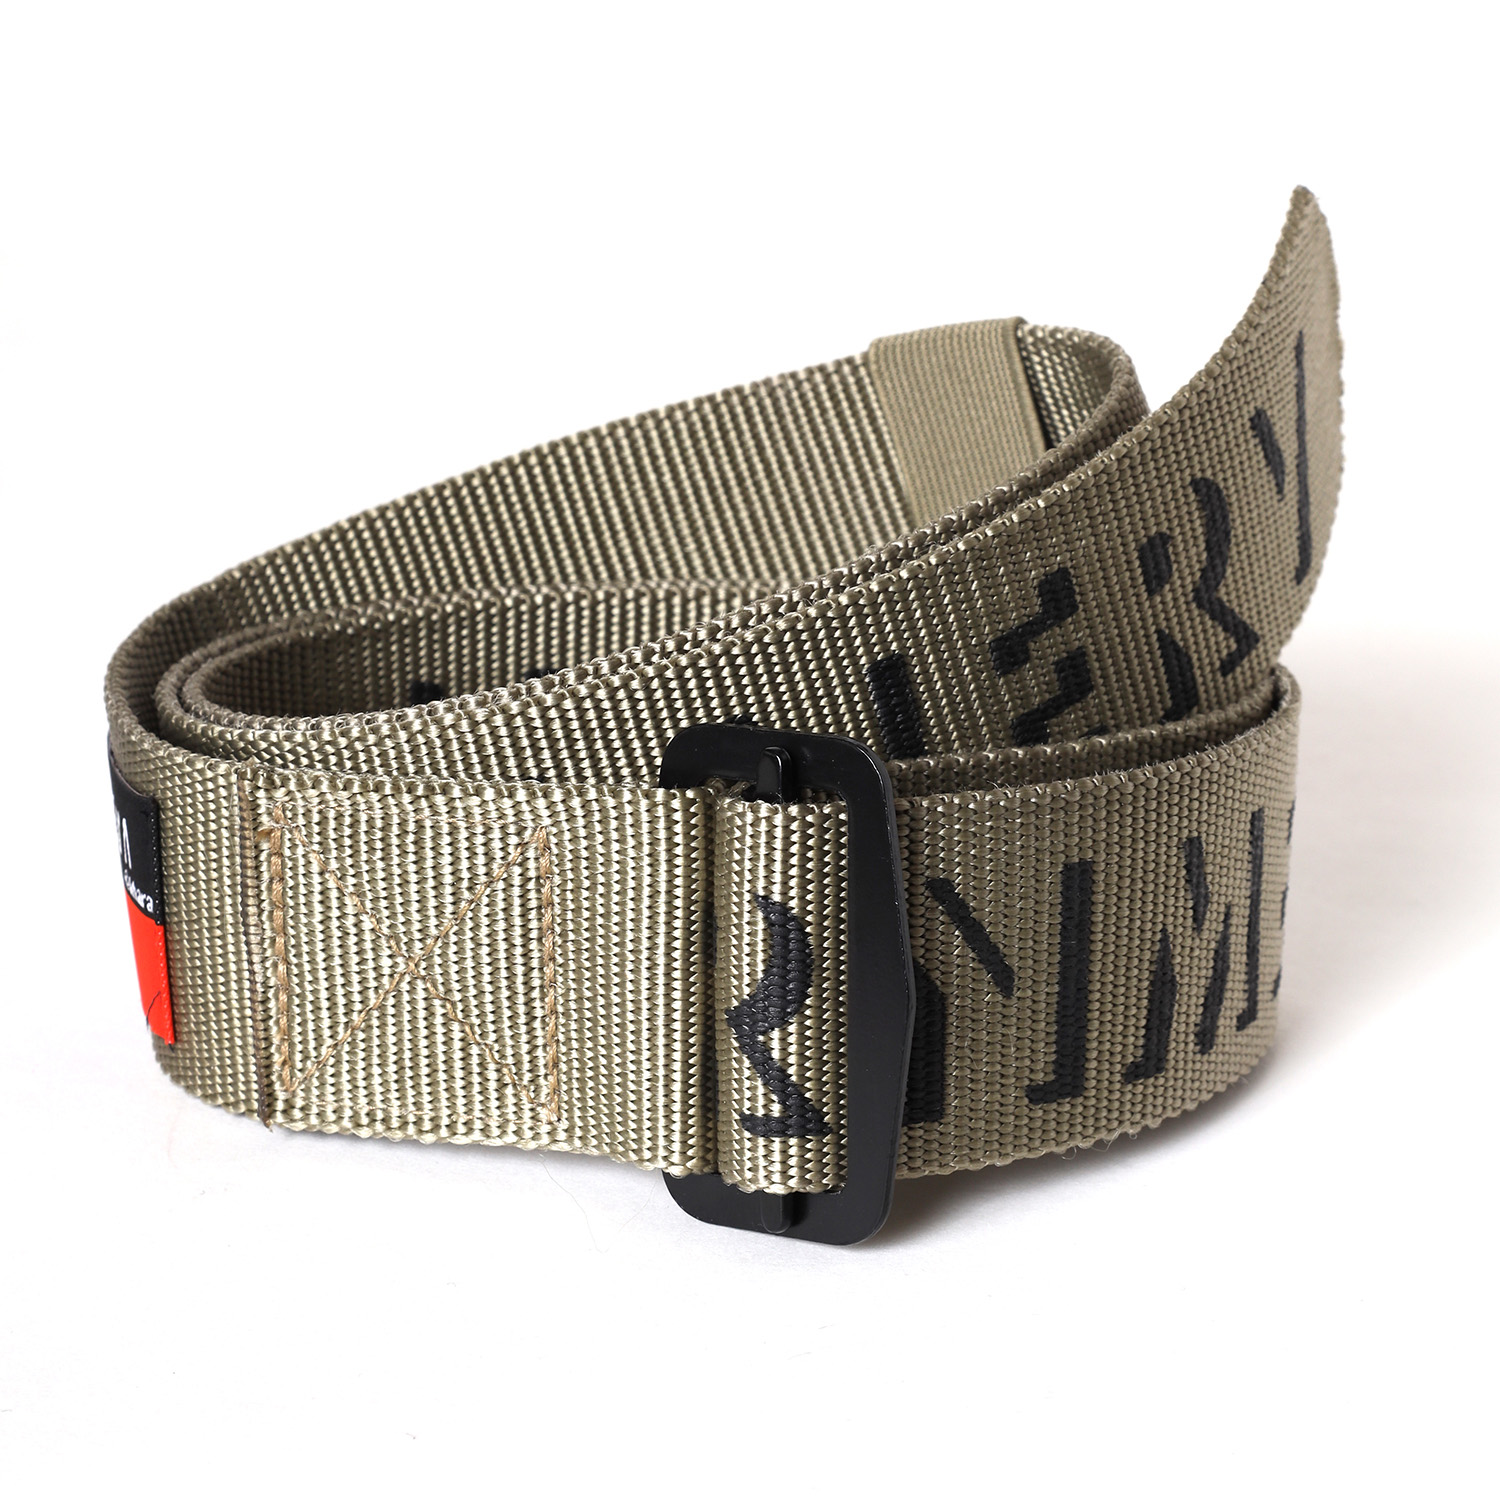 NERV ARMY LOGO BELT β (KHAKI)